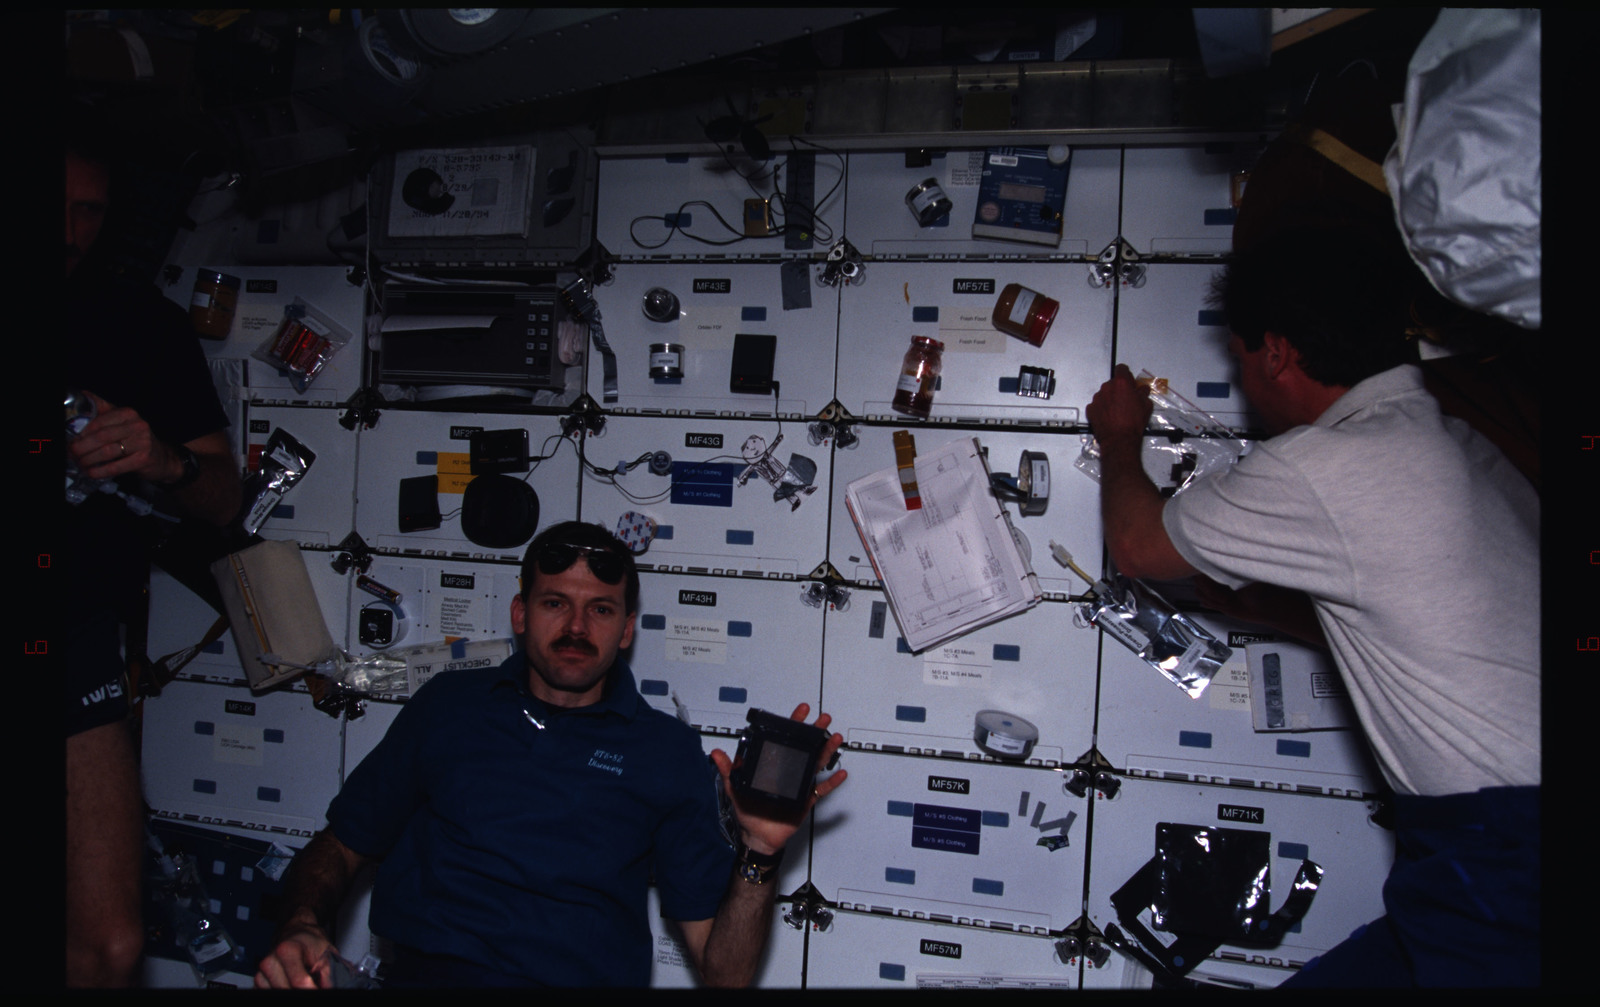 STS082-381-034 - STS-082 - Crewmember activities in the shuttle middeck on day off